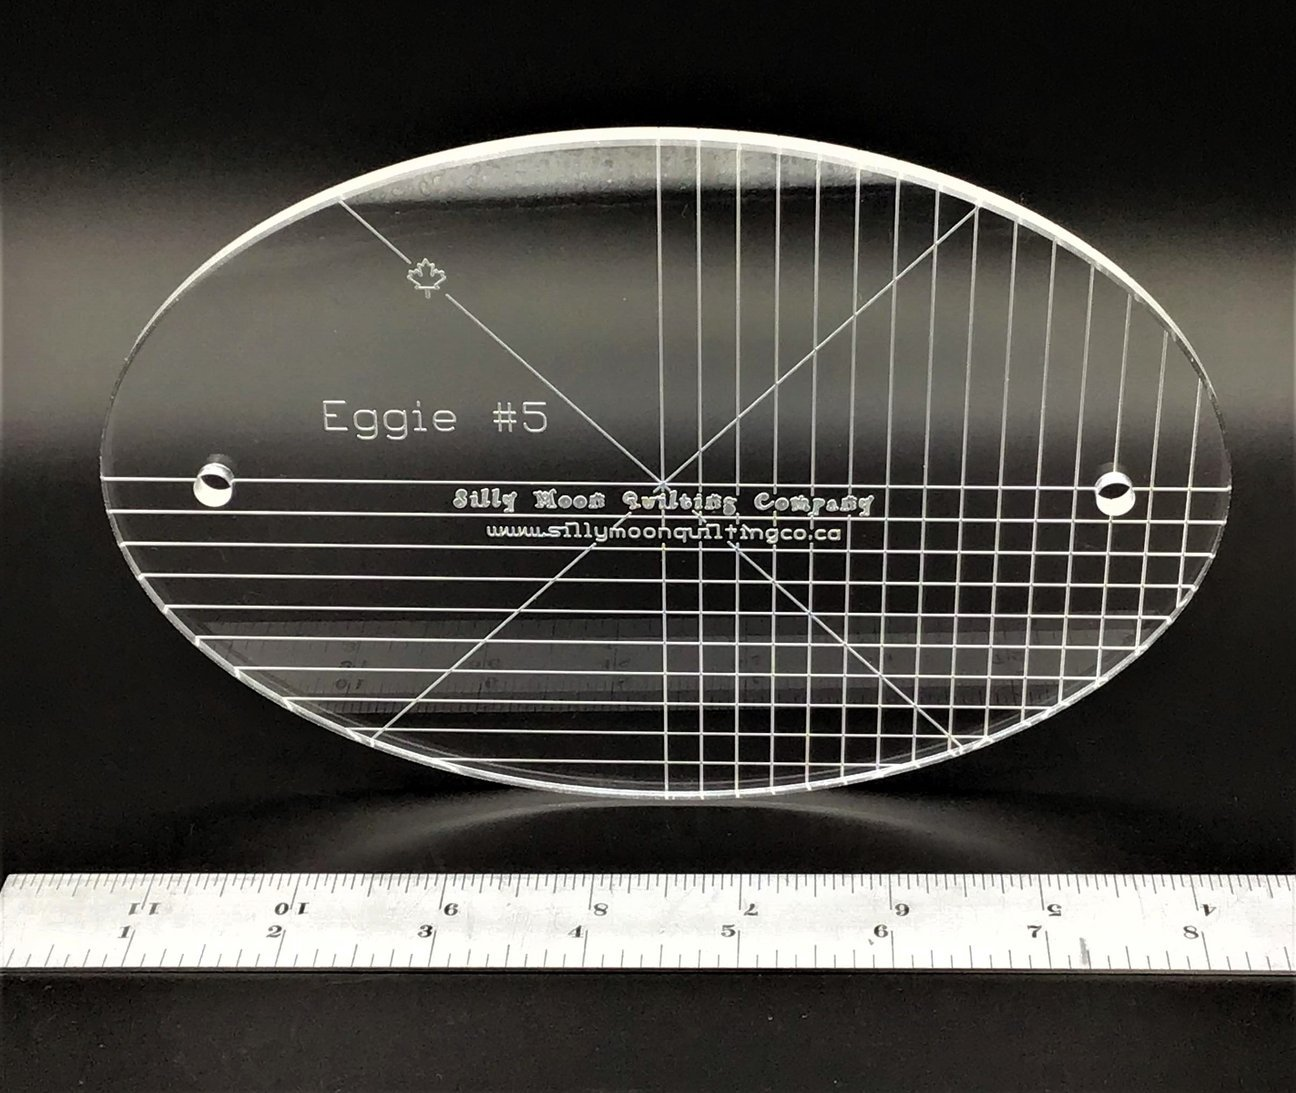 Eggie #5 - Oval Ruler